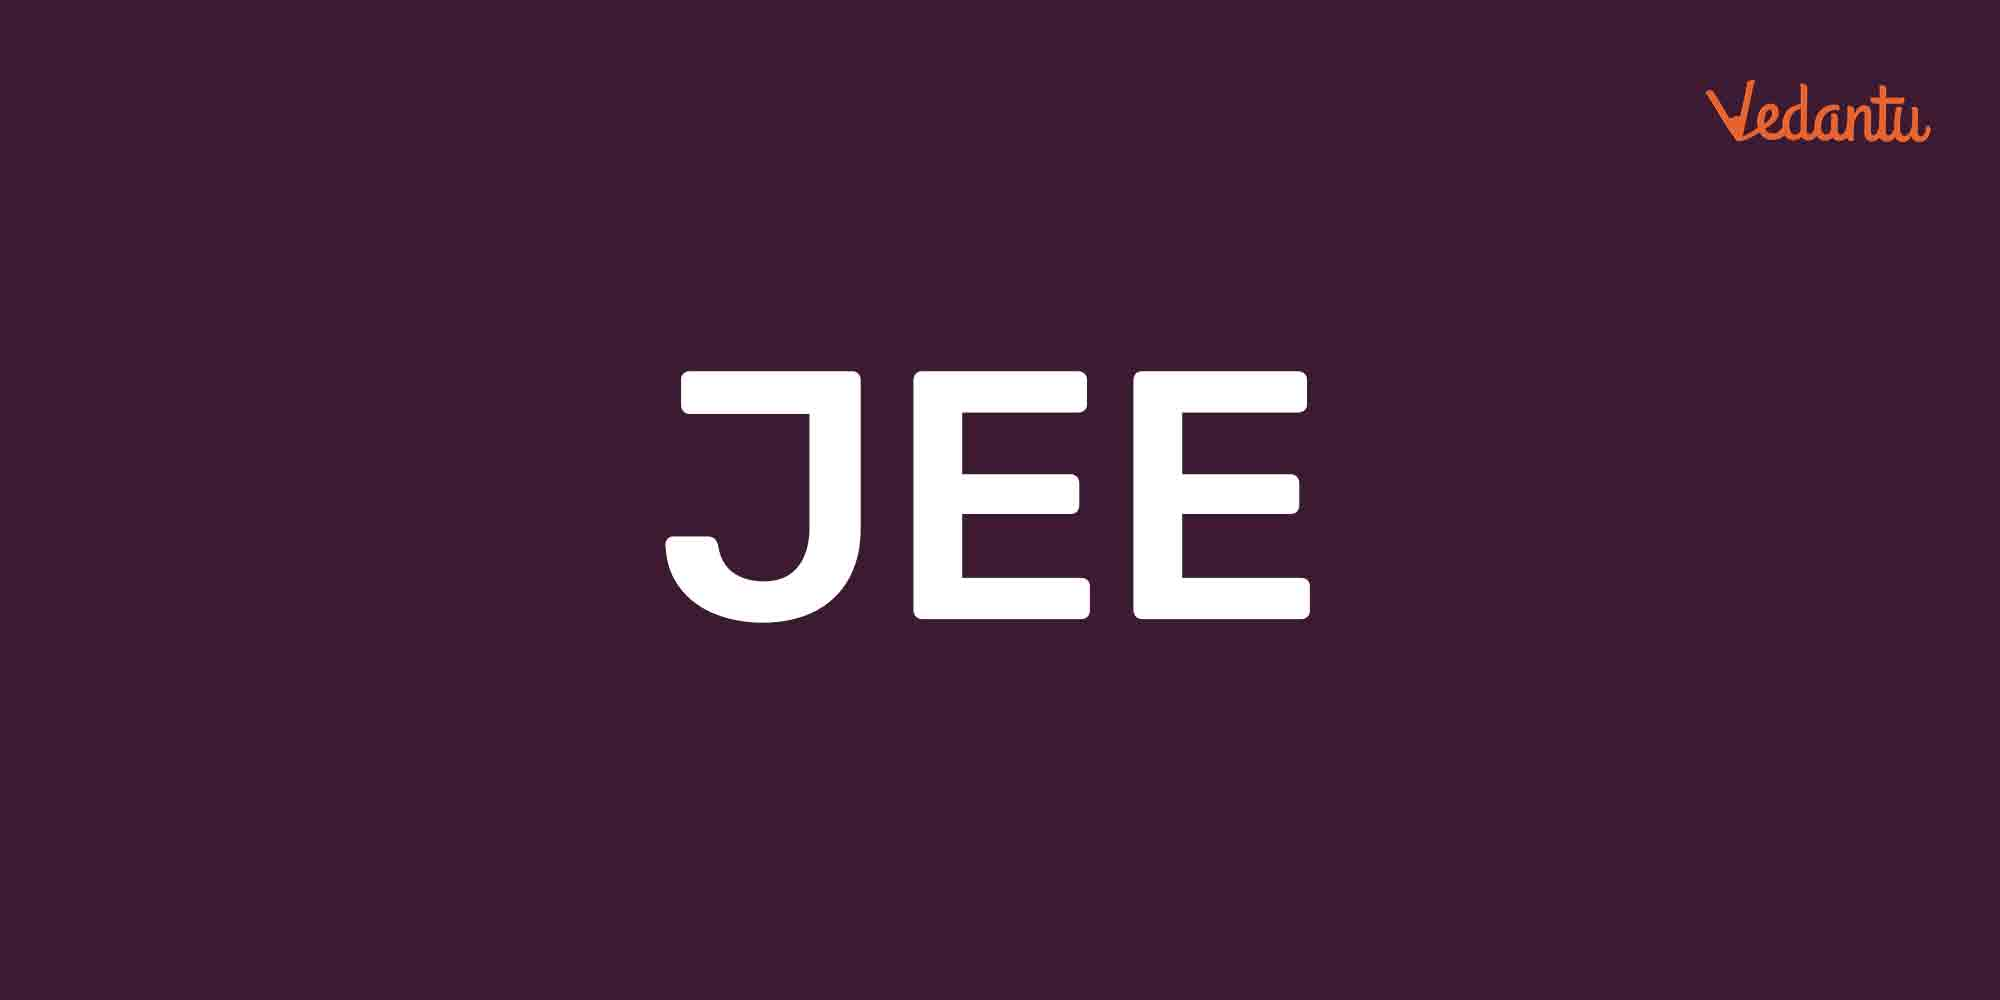 Can I Give JEE Advanced After Taking Admission in NIT?